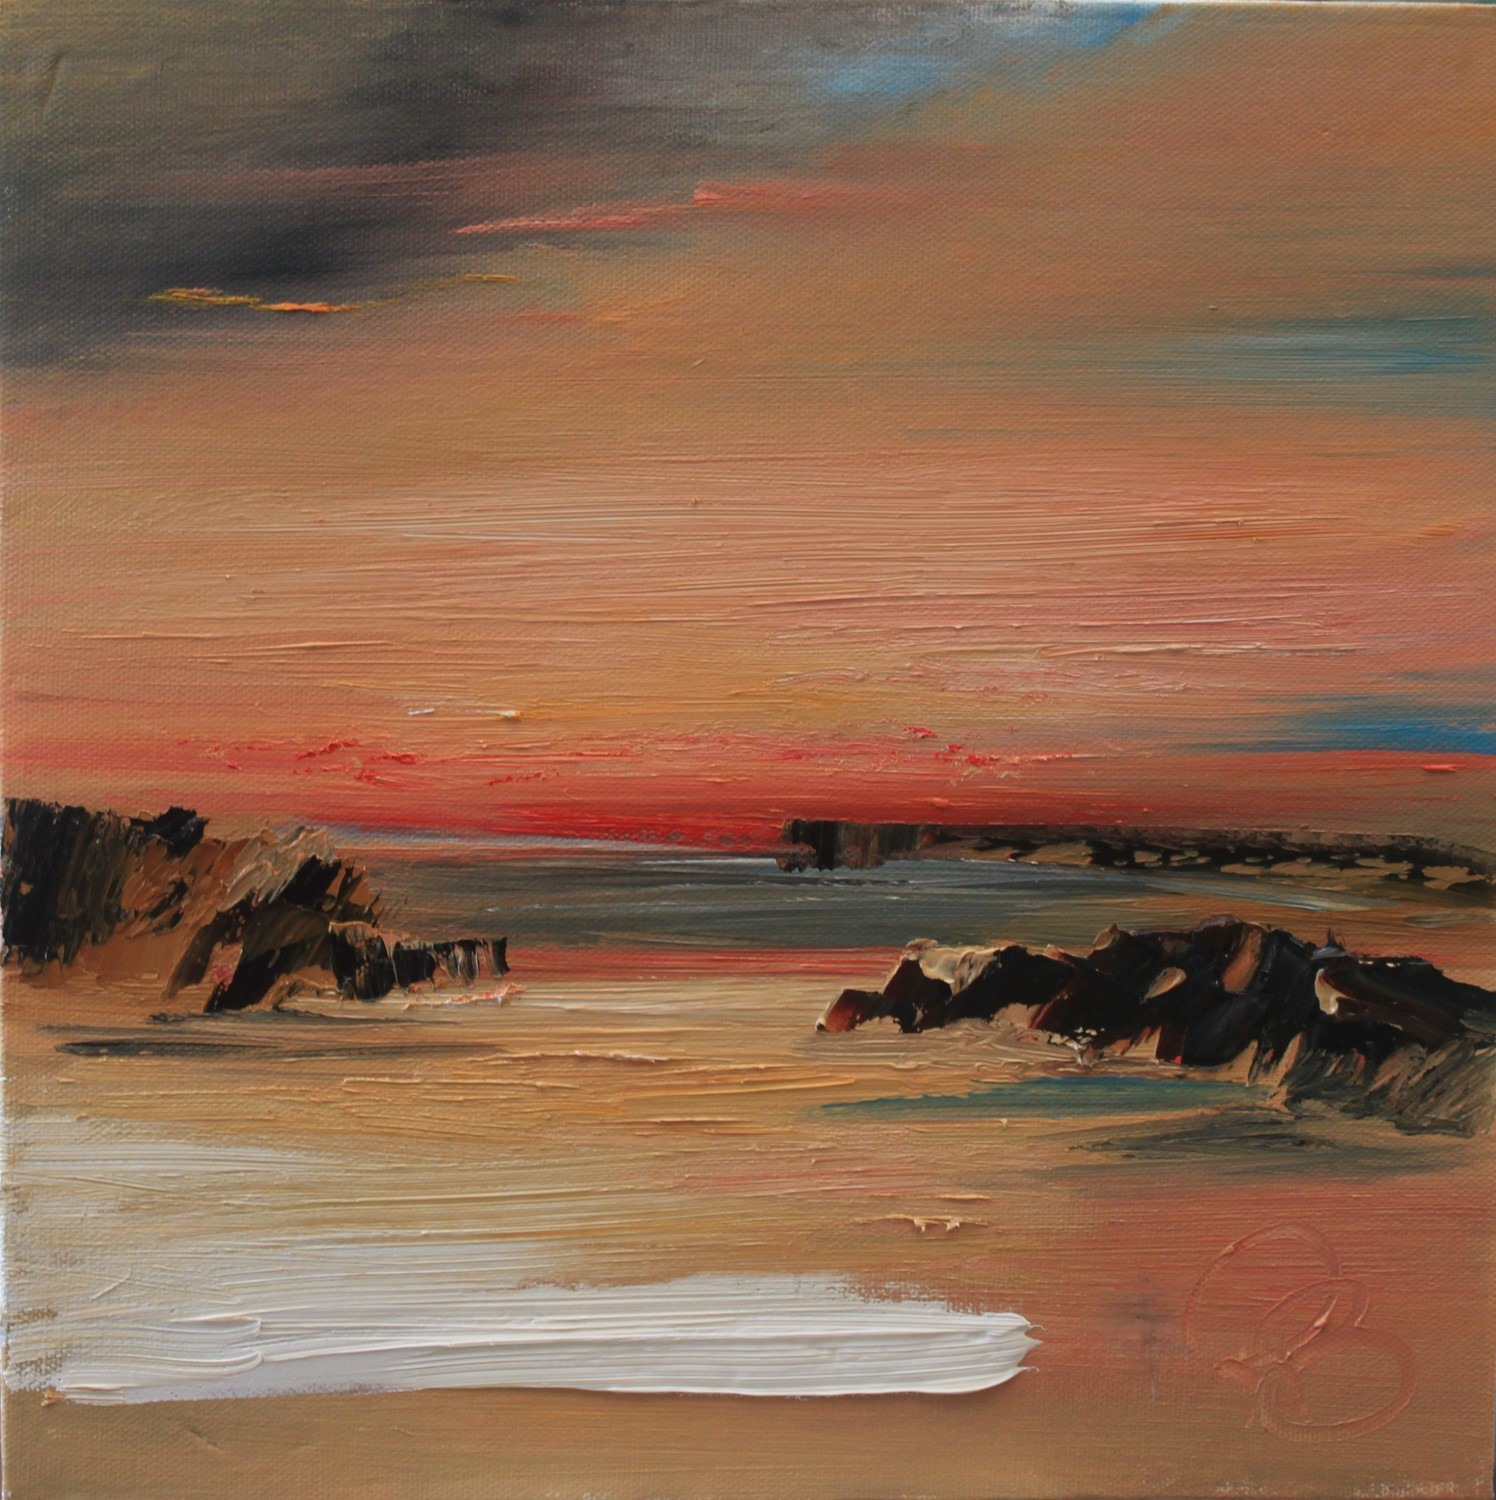 'Sunset on the Cove' by artist Rosanne Barr